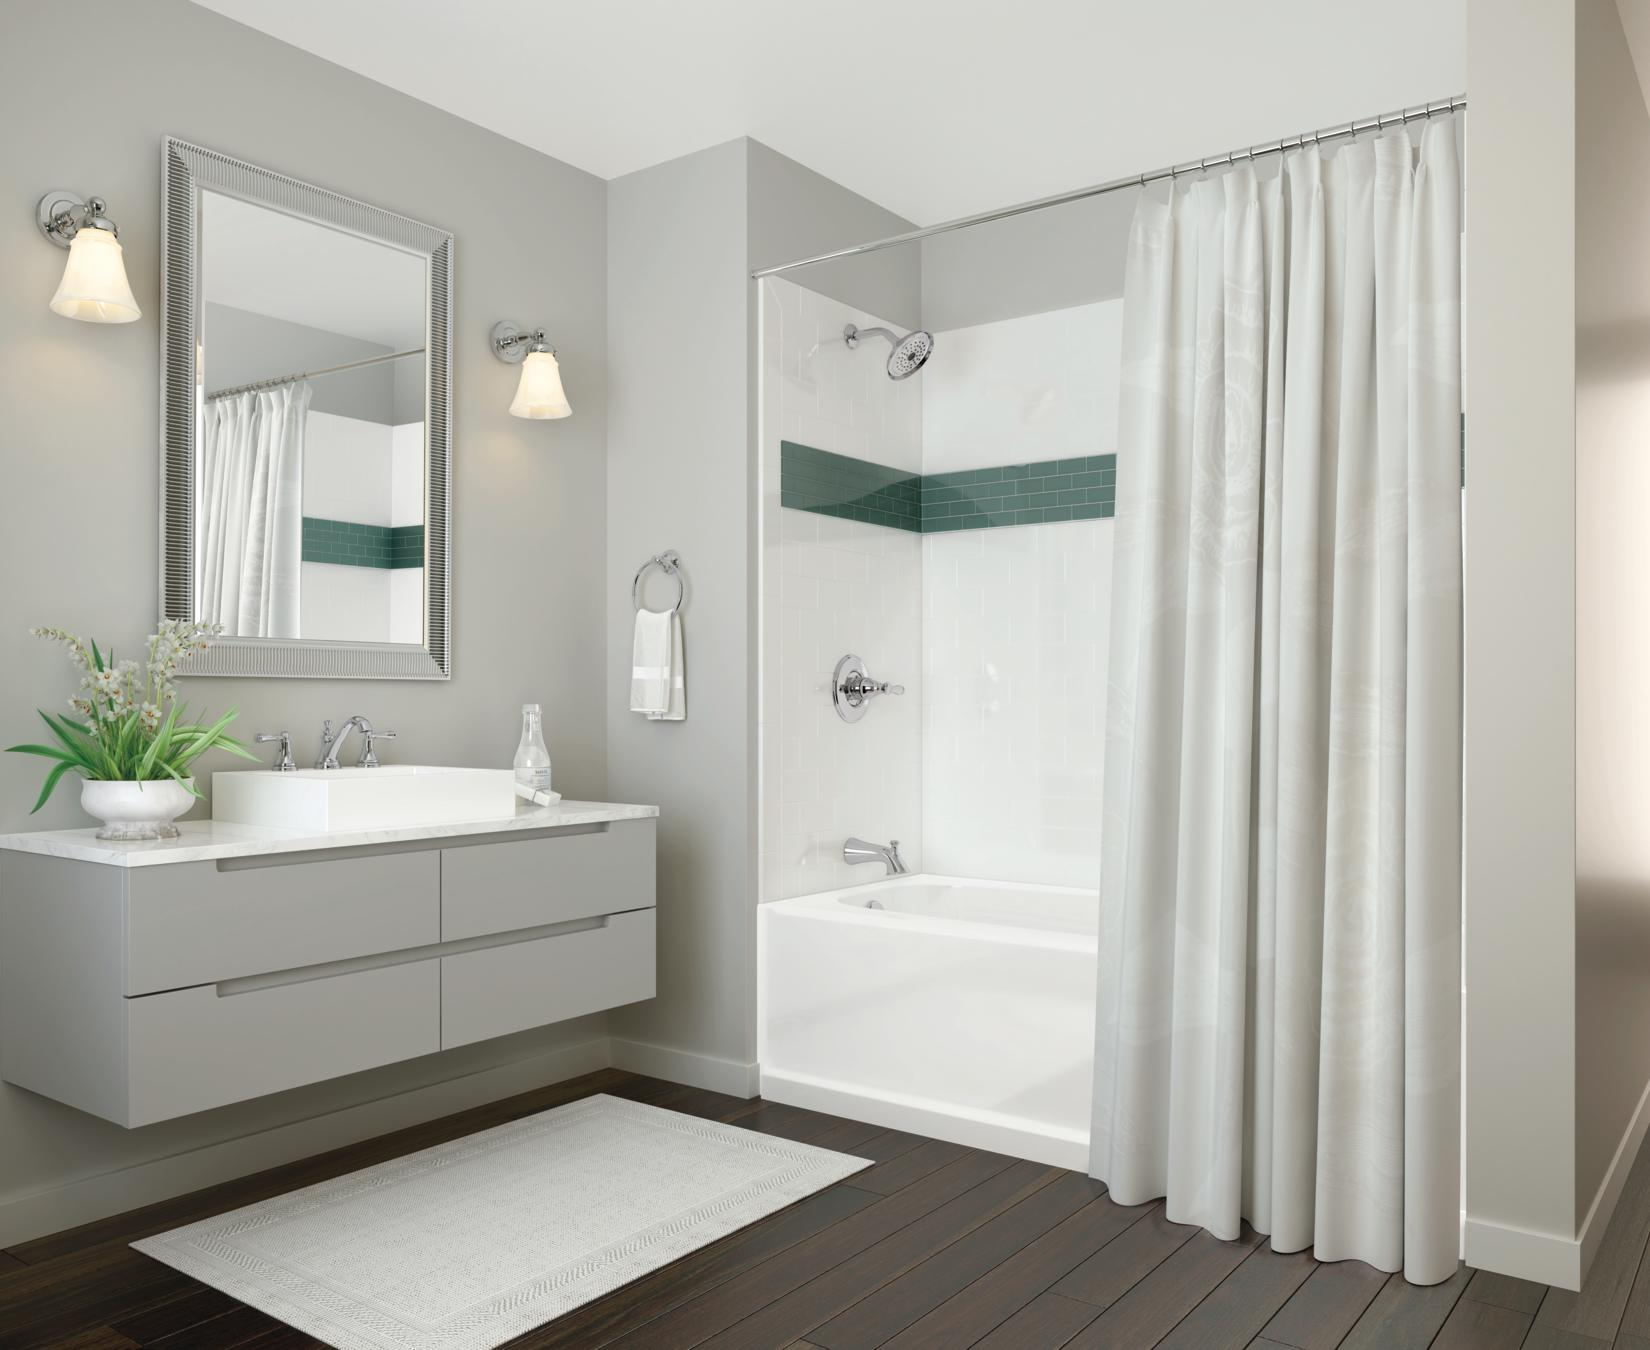 of x bathrooms aq single delta bath bathroom ended ad acrylic additional carron image